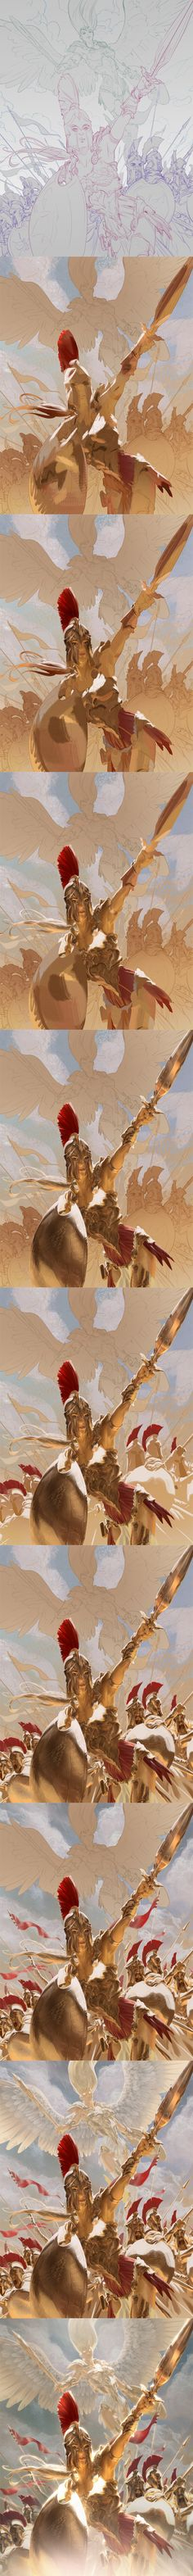 Ruze: To Battle - steps by algenpfleger.deviantart.com on @deviantART